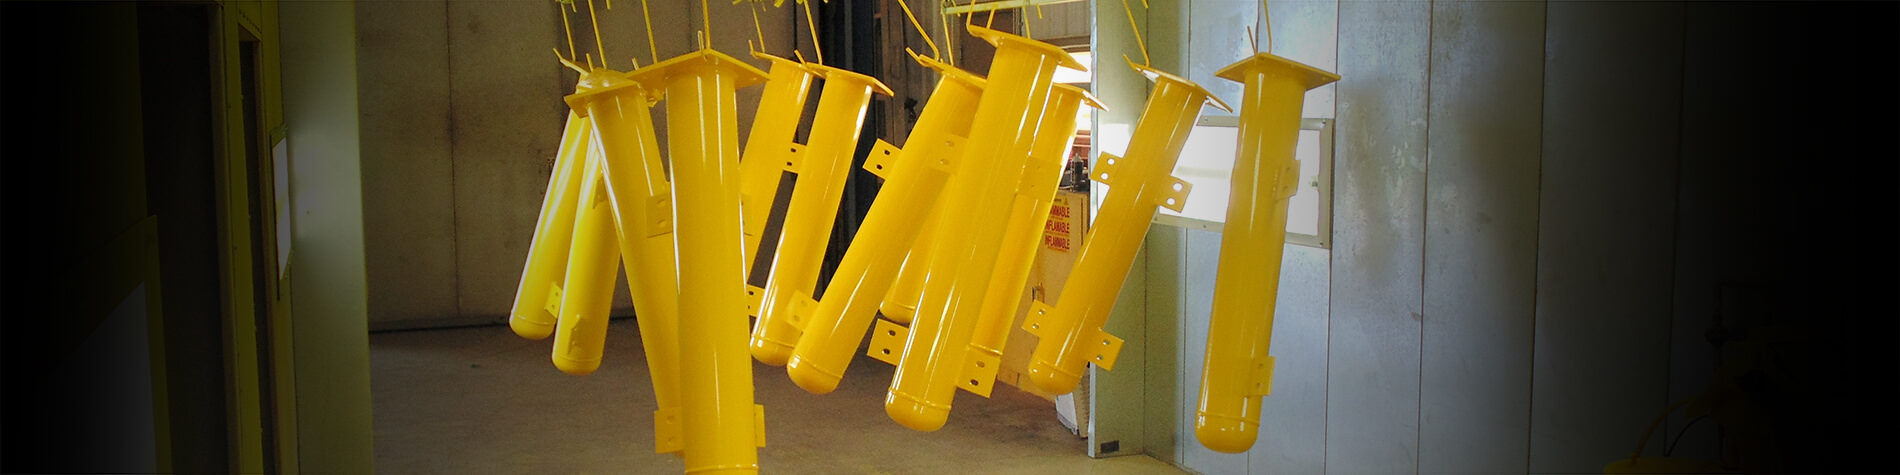 Items hung to dry after powder coating